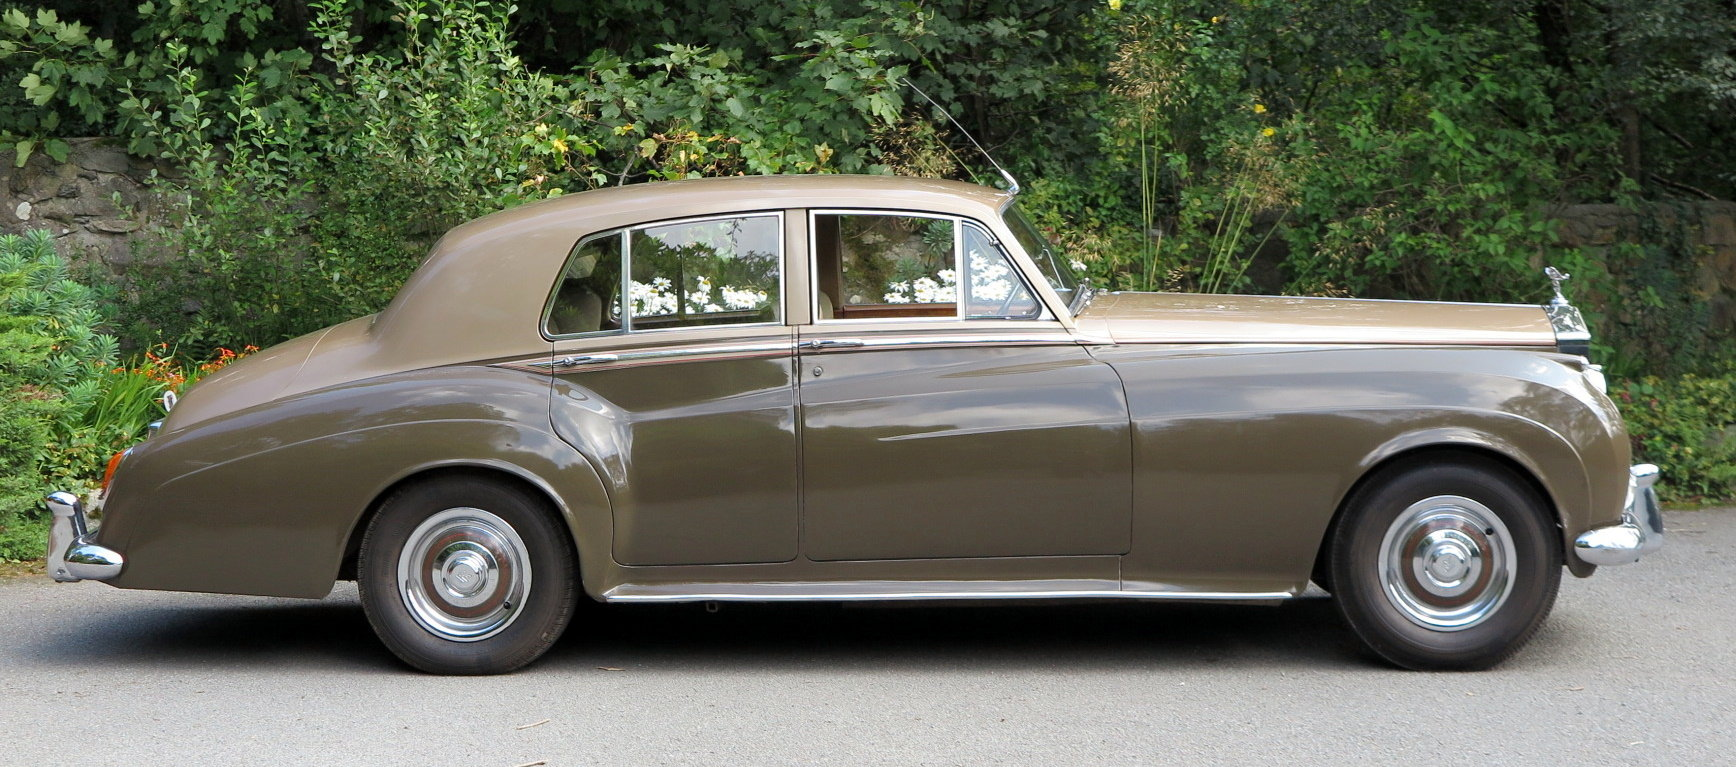 1961 Rolls-Royce Silver Cloud II Four Door Saloon SZD241 For Sale (picture 3 of 6)